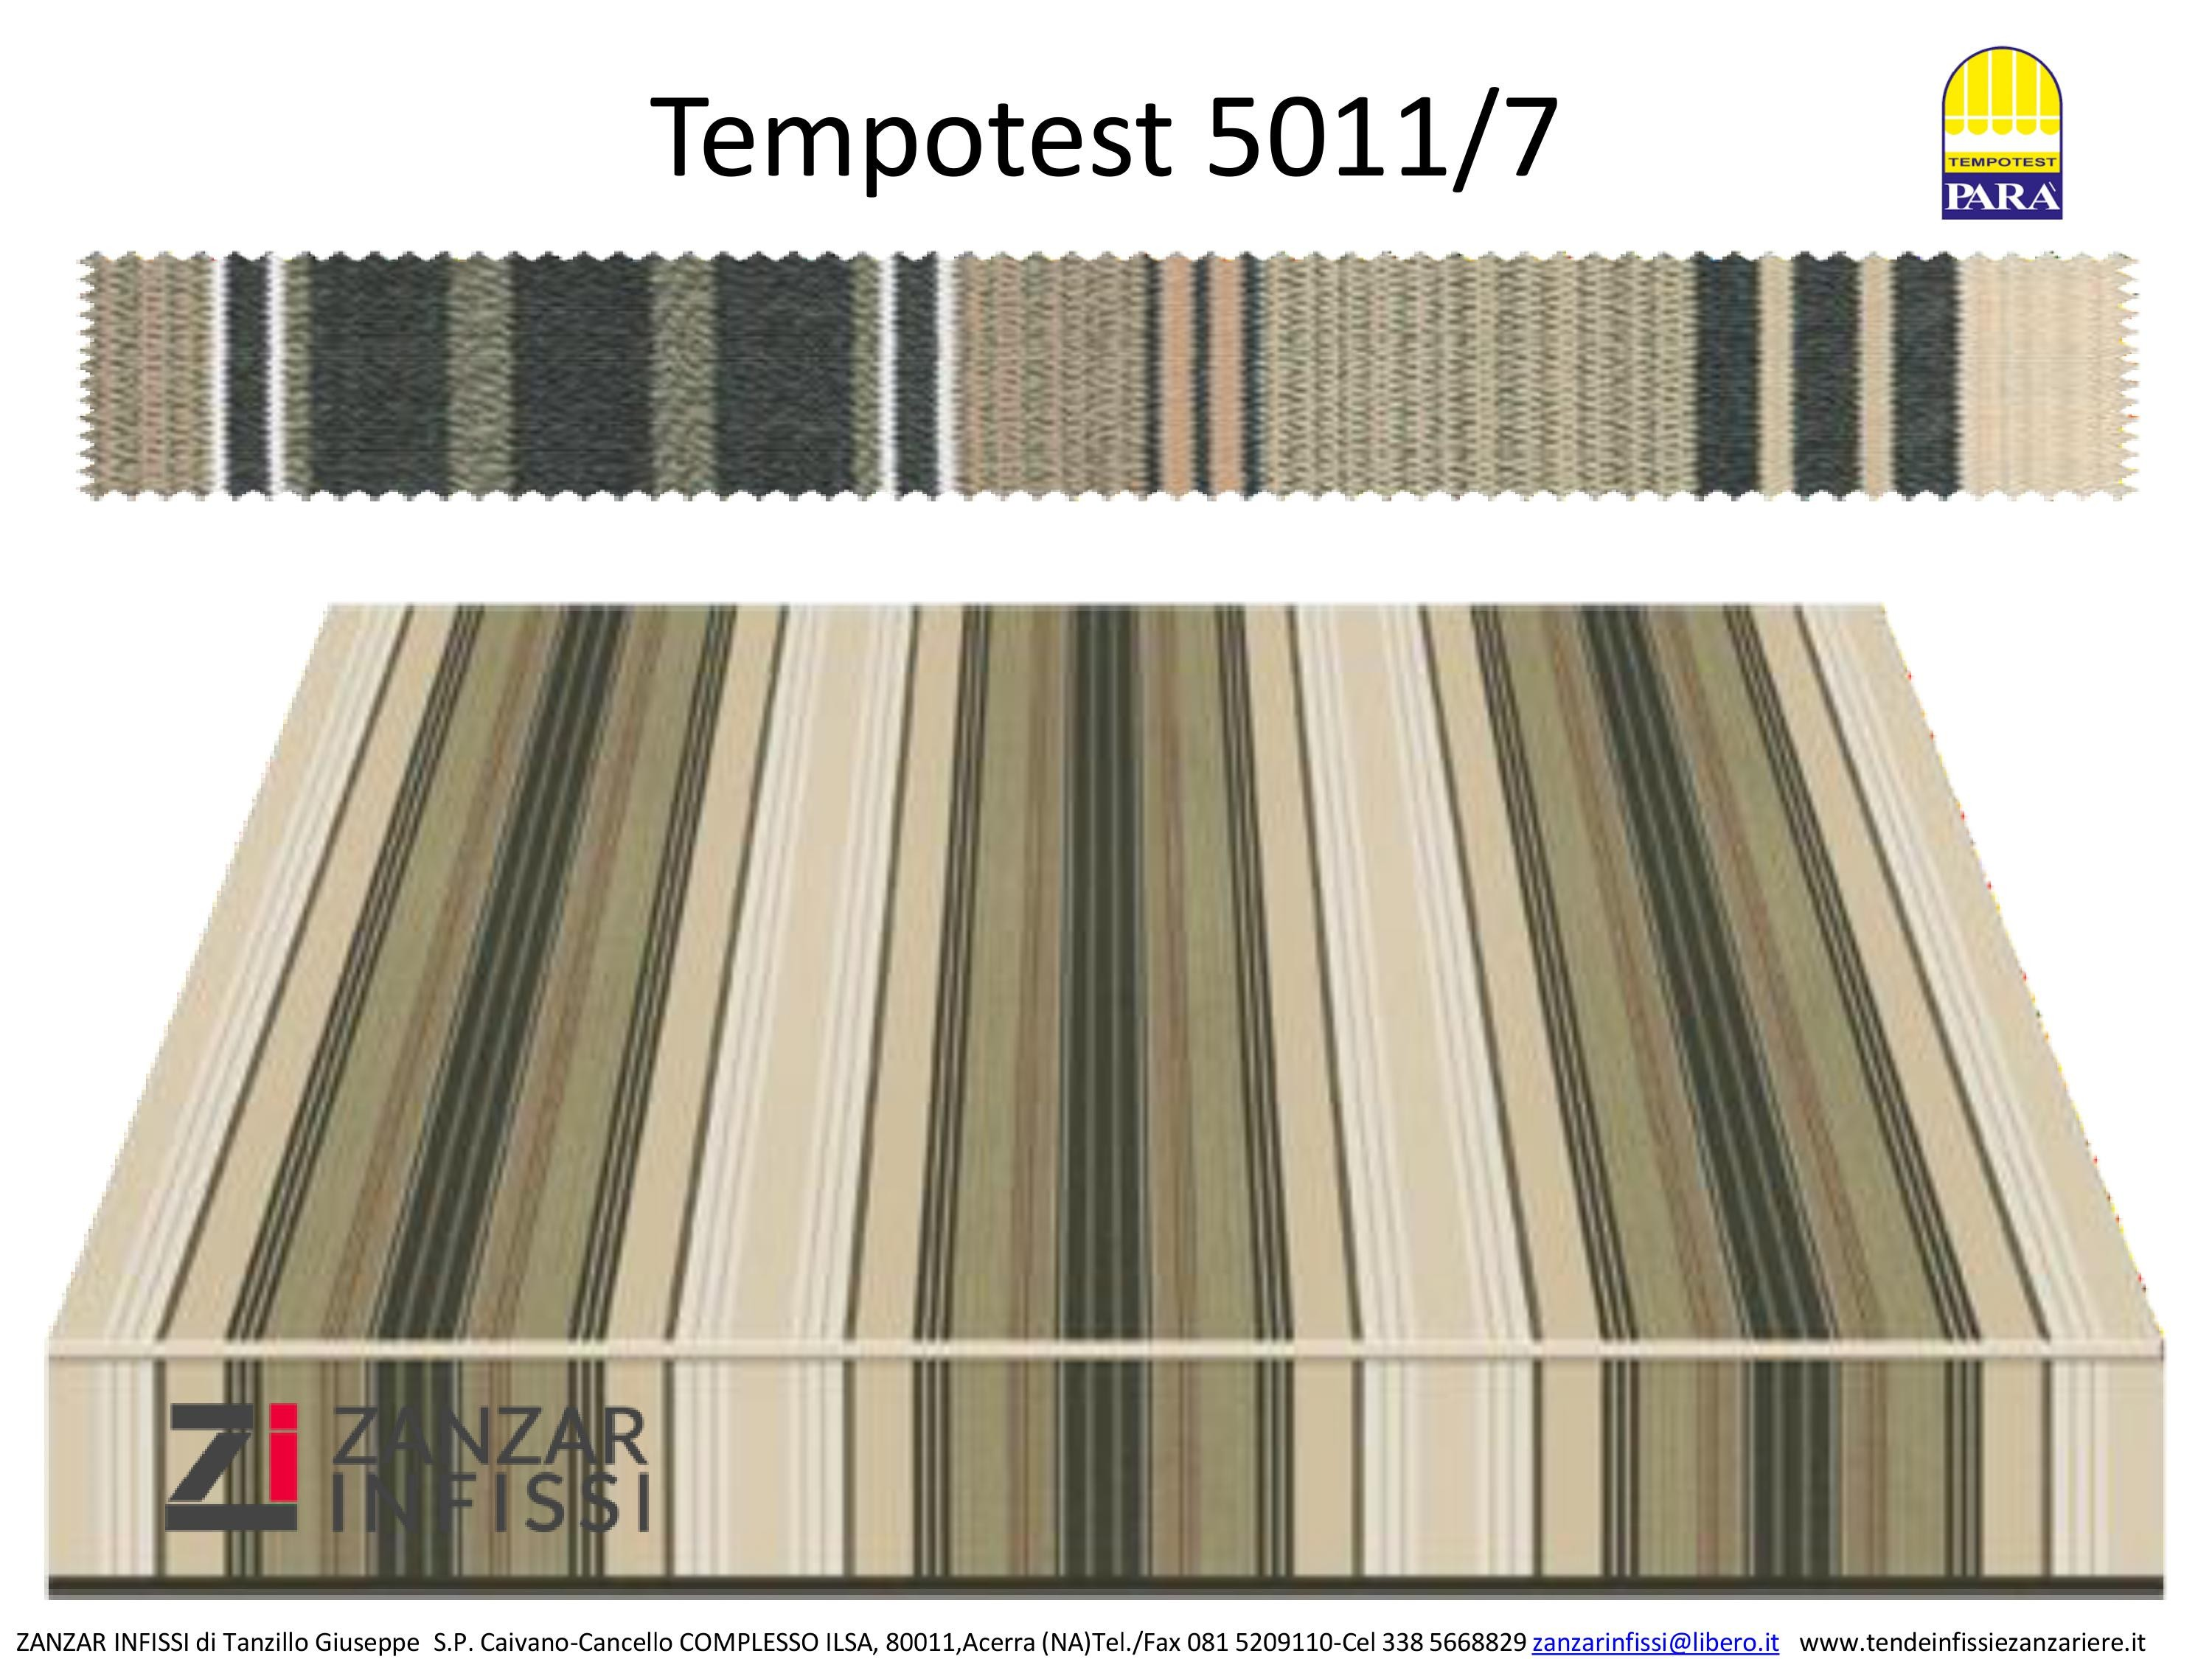 Tempotest 5011/7